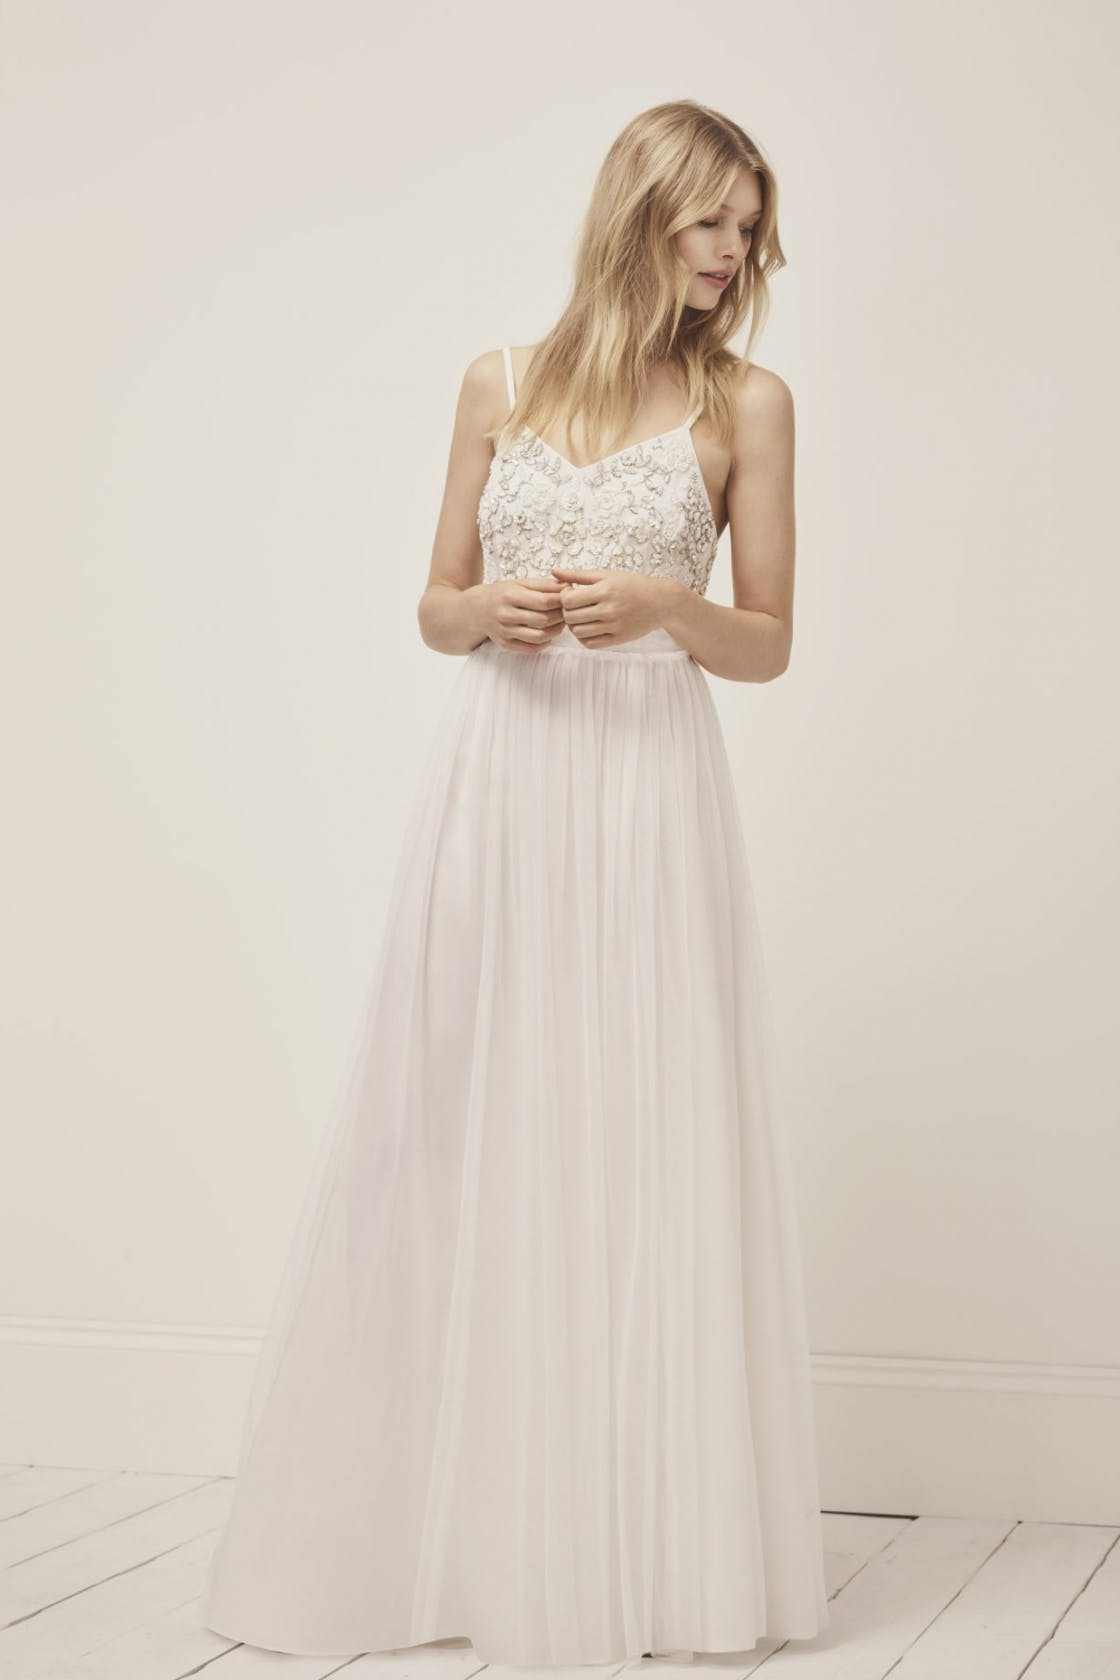 34ecdbb2a8ea French Connection's bridal range starts at just £65 (pictured dress, £195).  Bridesmaids ...